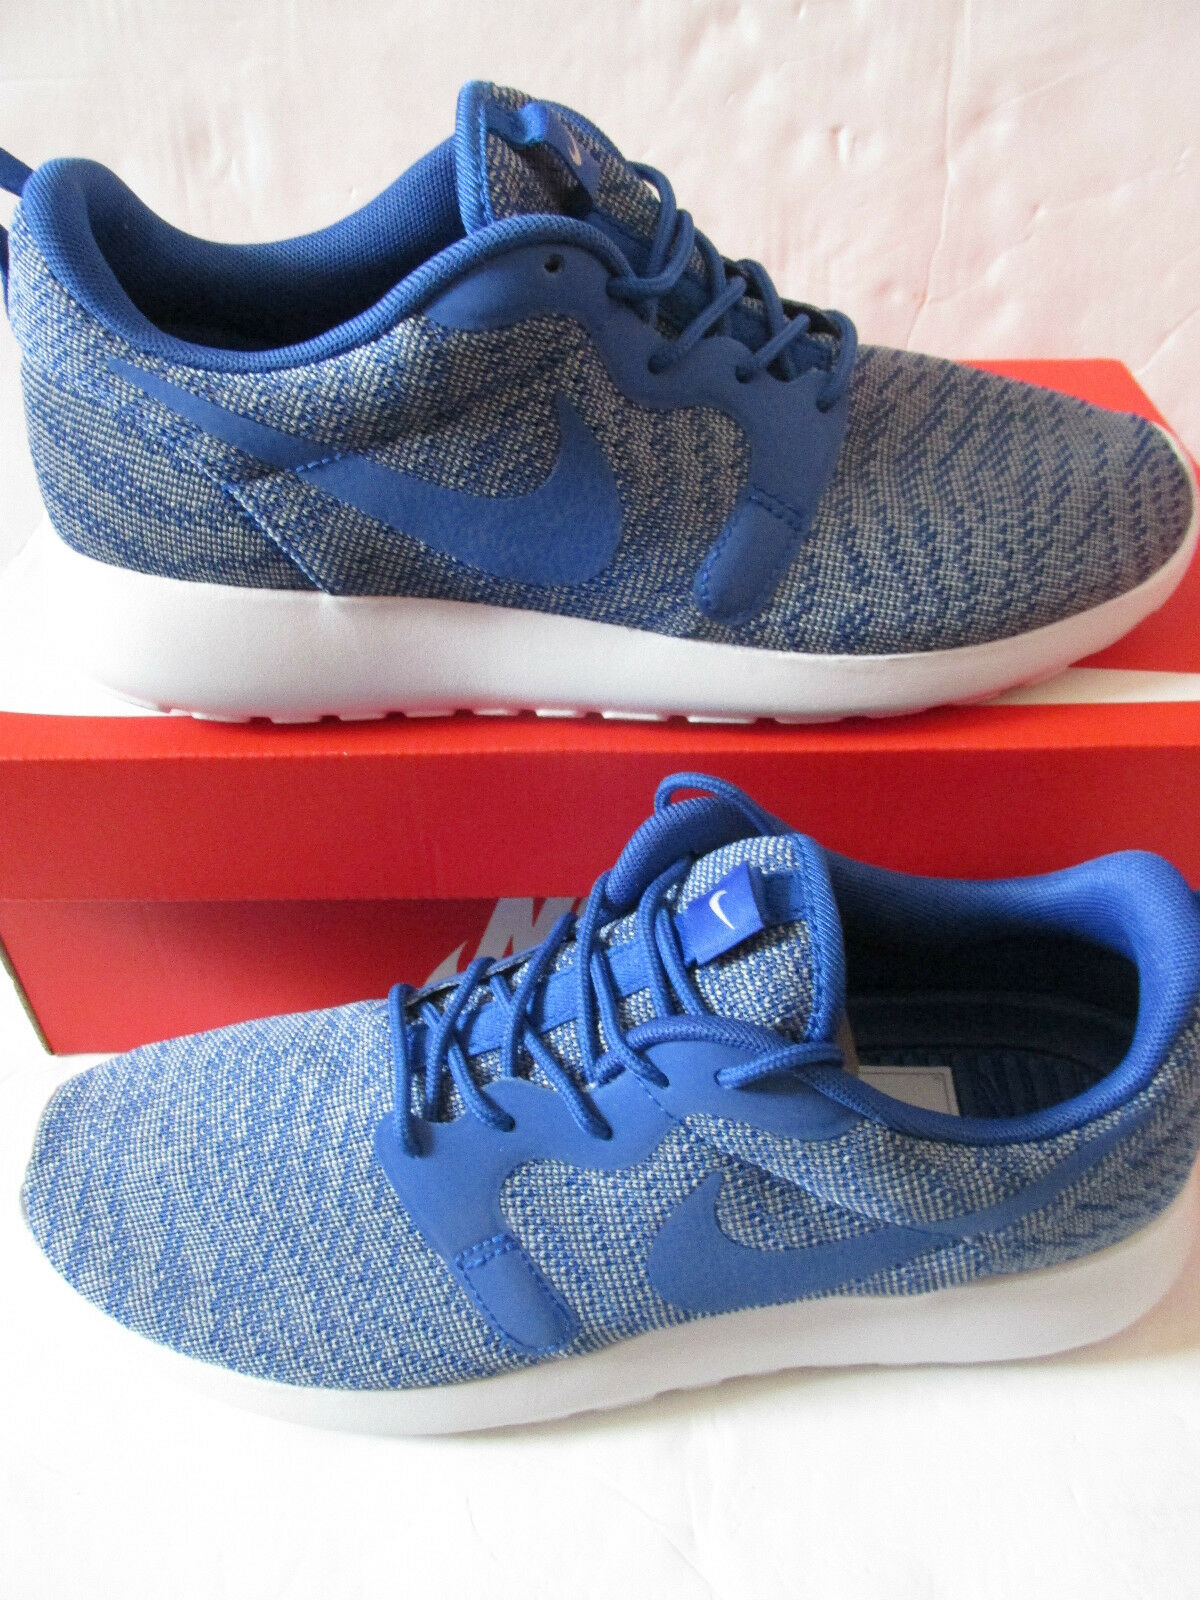 nike roshe one KJCRD sneakers mens running trainers 777429 401 sneakers KJCRD shoes a5916c